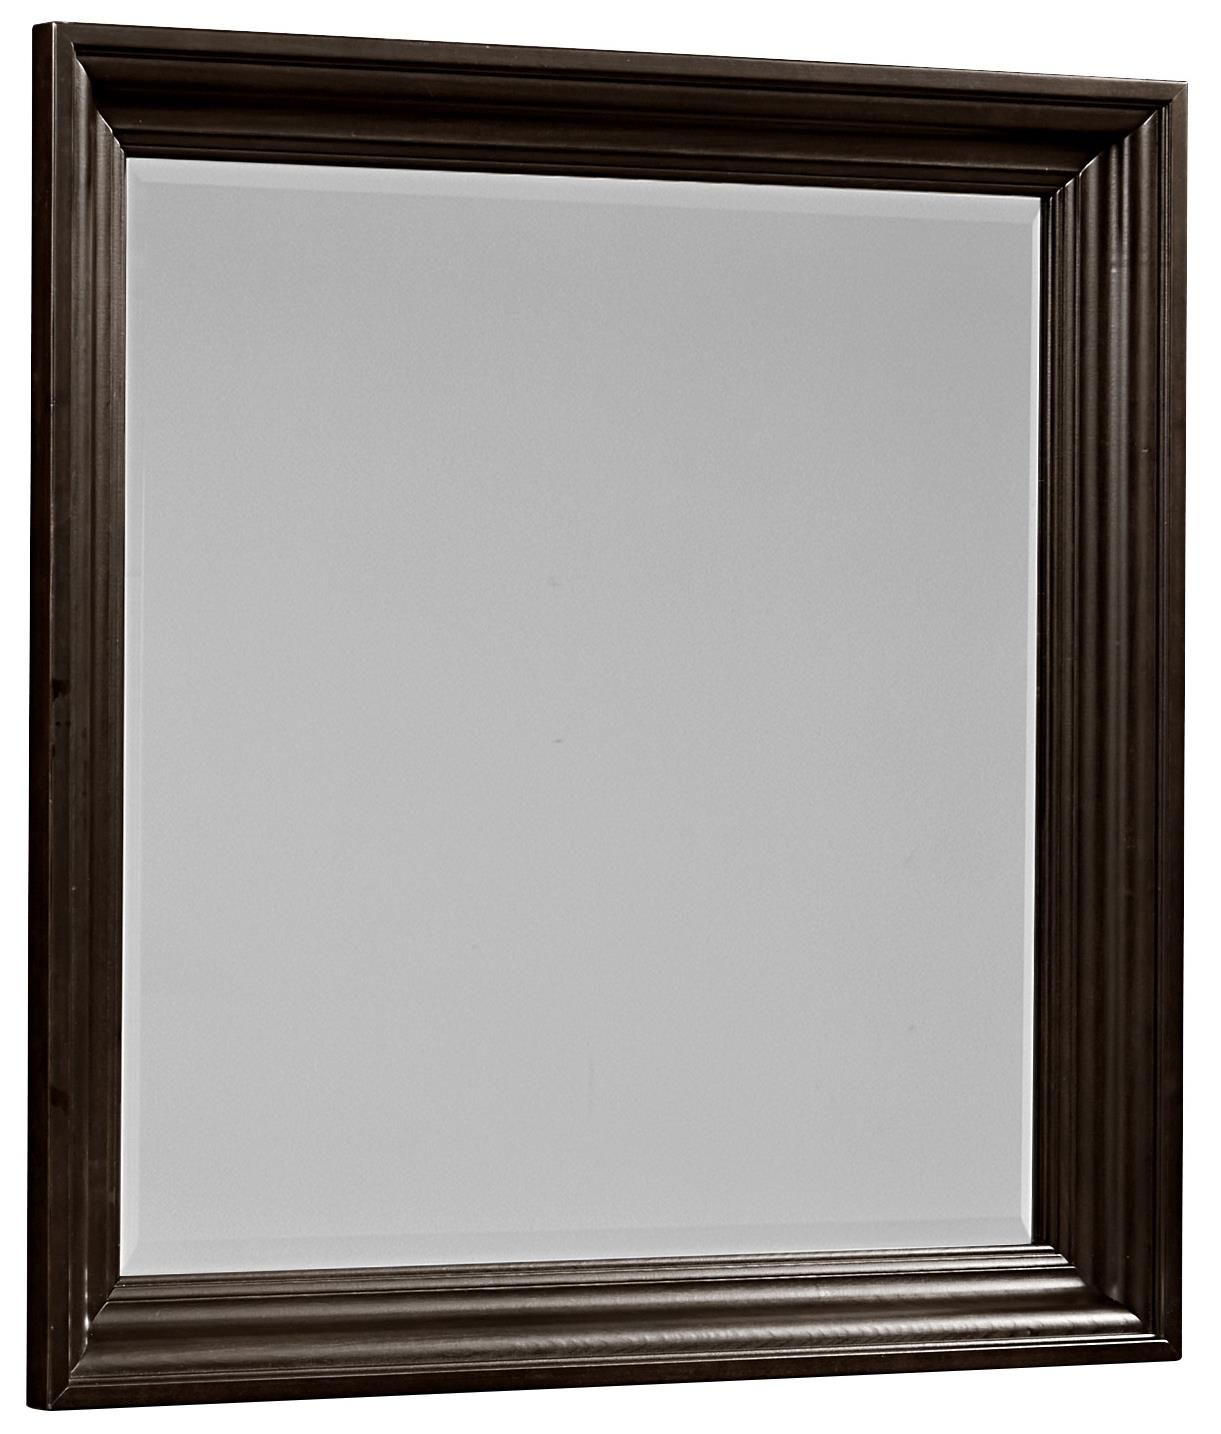 Vaughan Bassett Bedford Landscape Mirror - Item Number: BB88-445